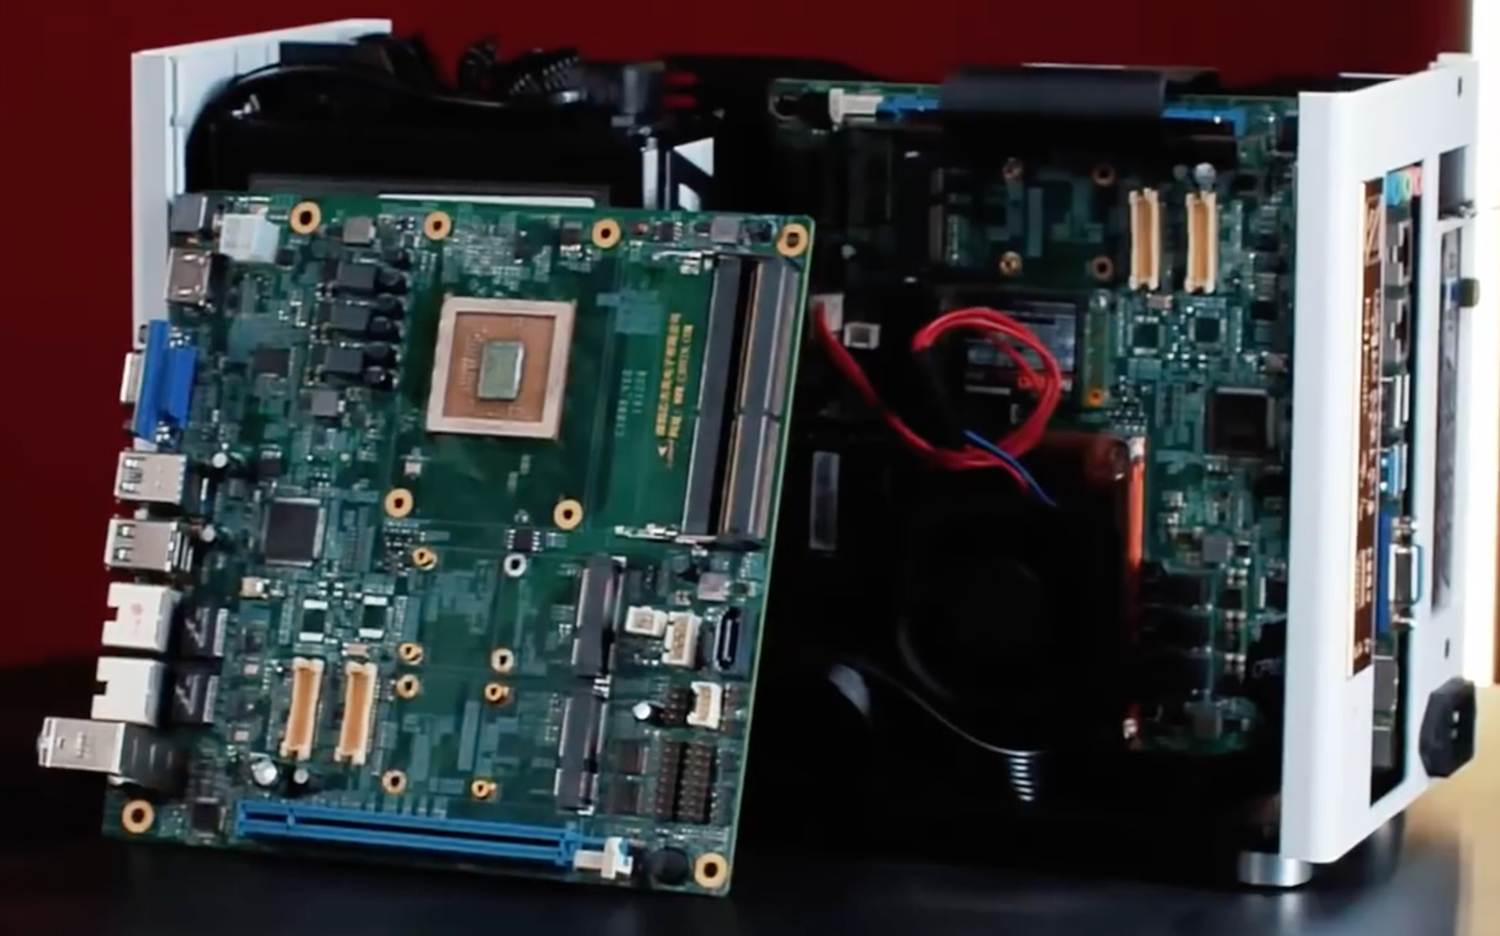 Image of article 'Zhaoxin Kaixian x86 8 Core CPUs Now Available in the DIY Channel'